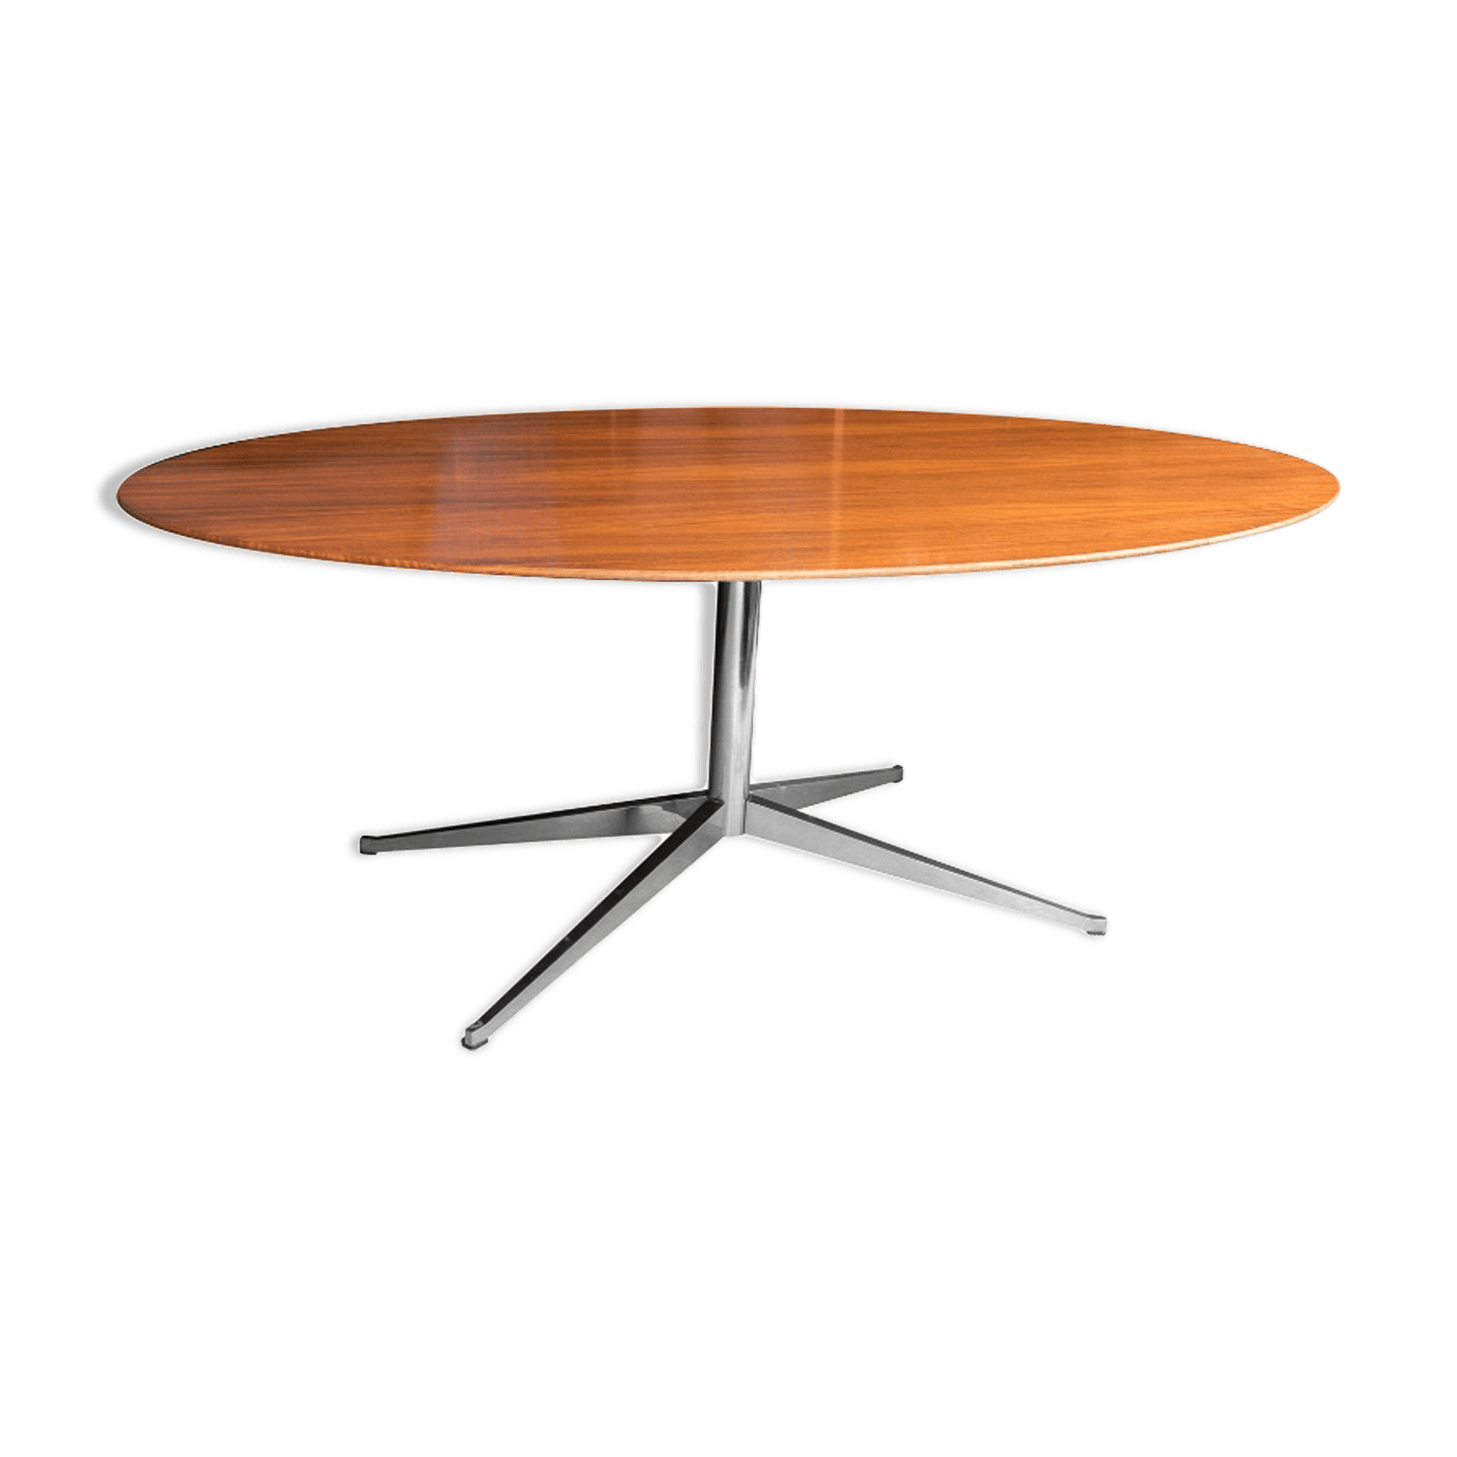 Table Ovale Knoll Top Table Manger Ovale Florence Knoll With Table Knoll